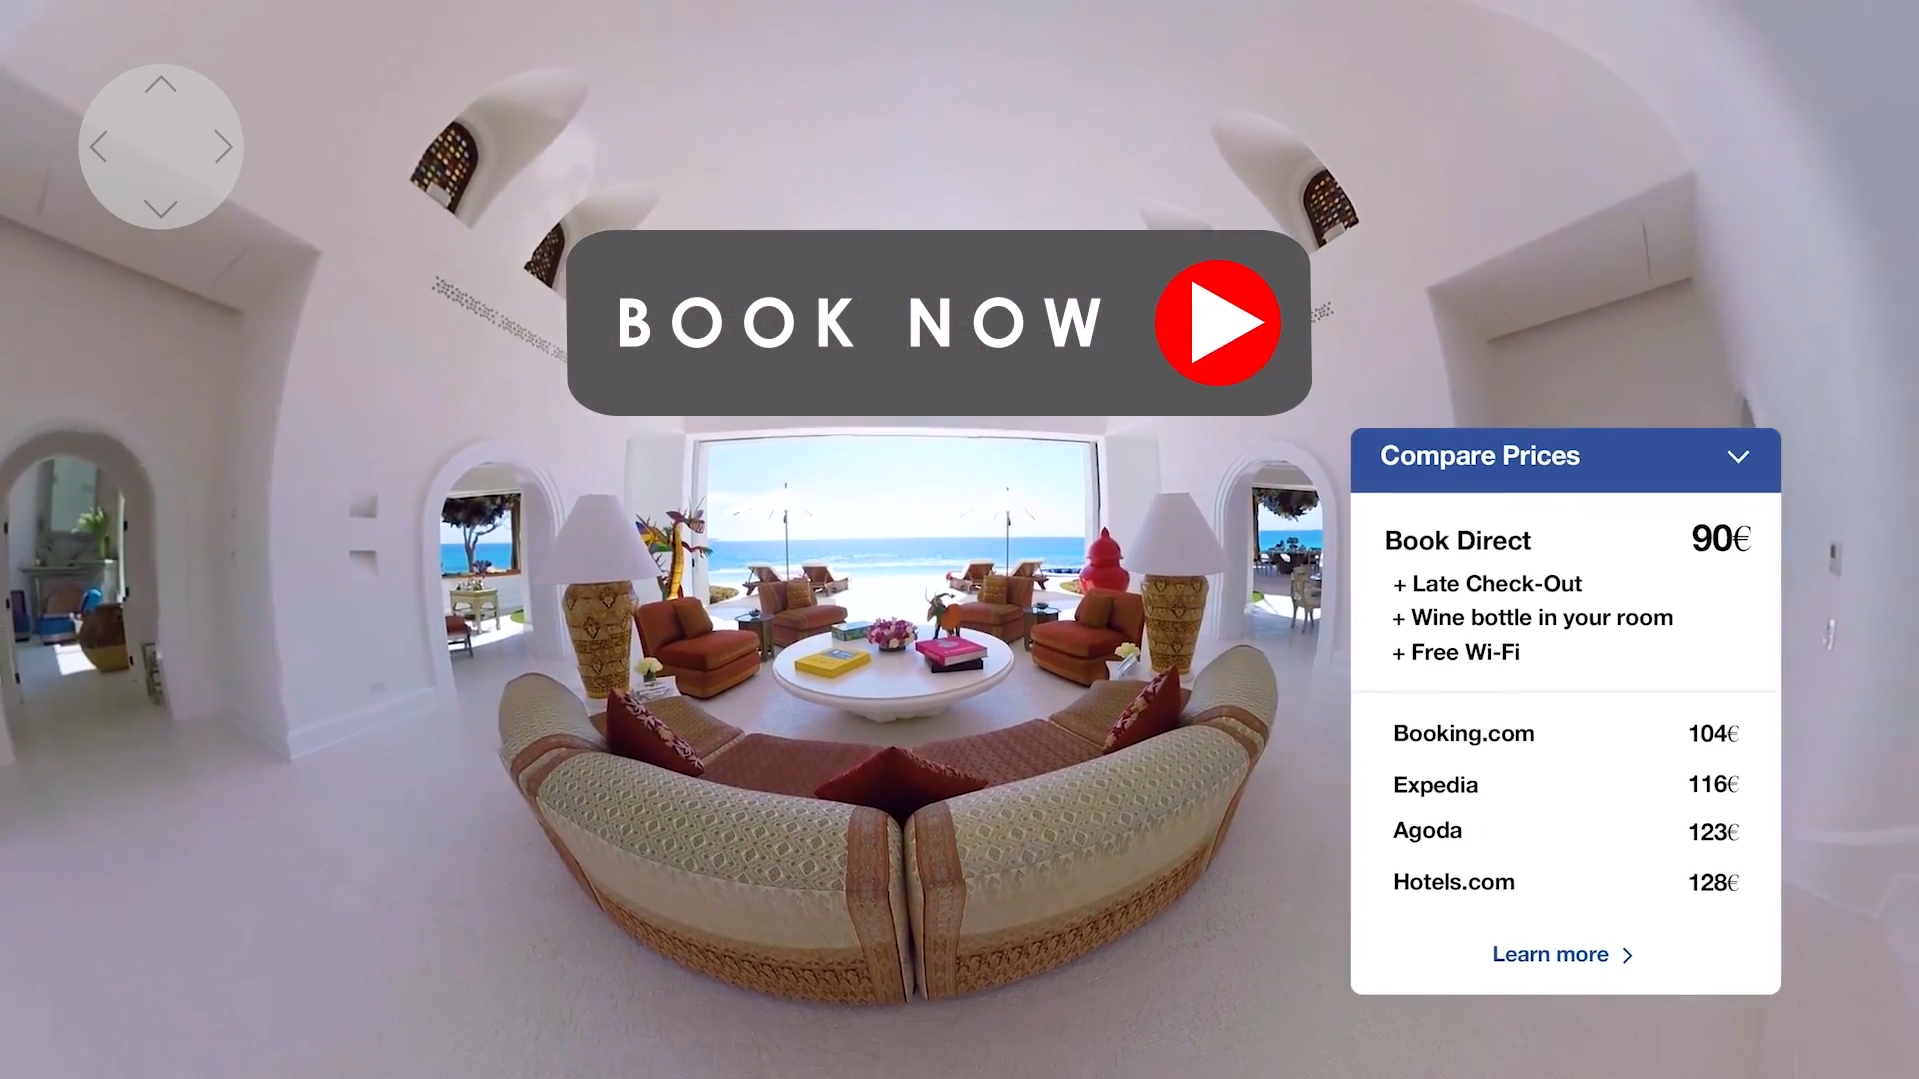 VR book now button with rate parity